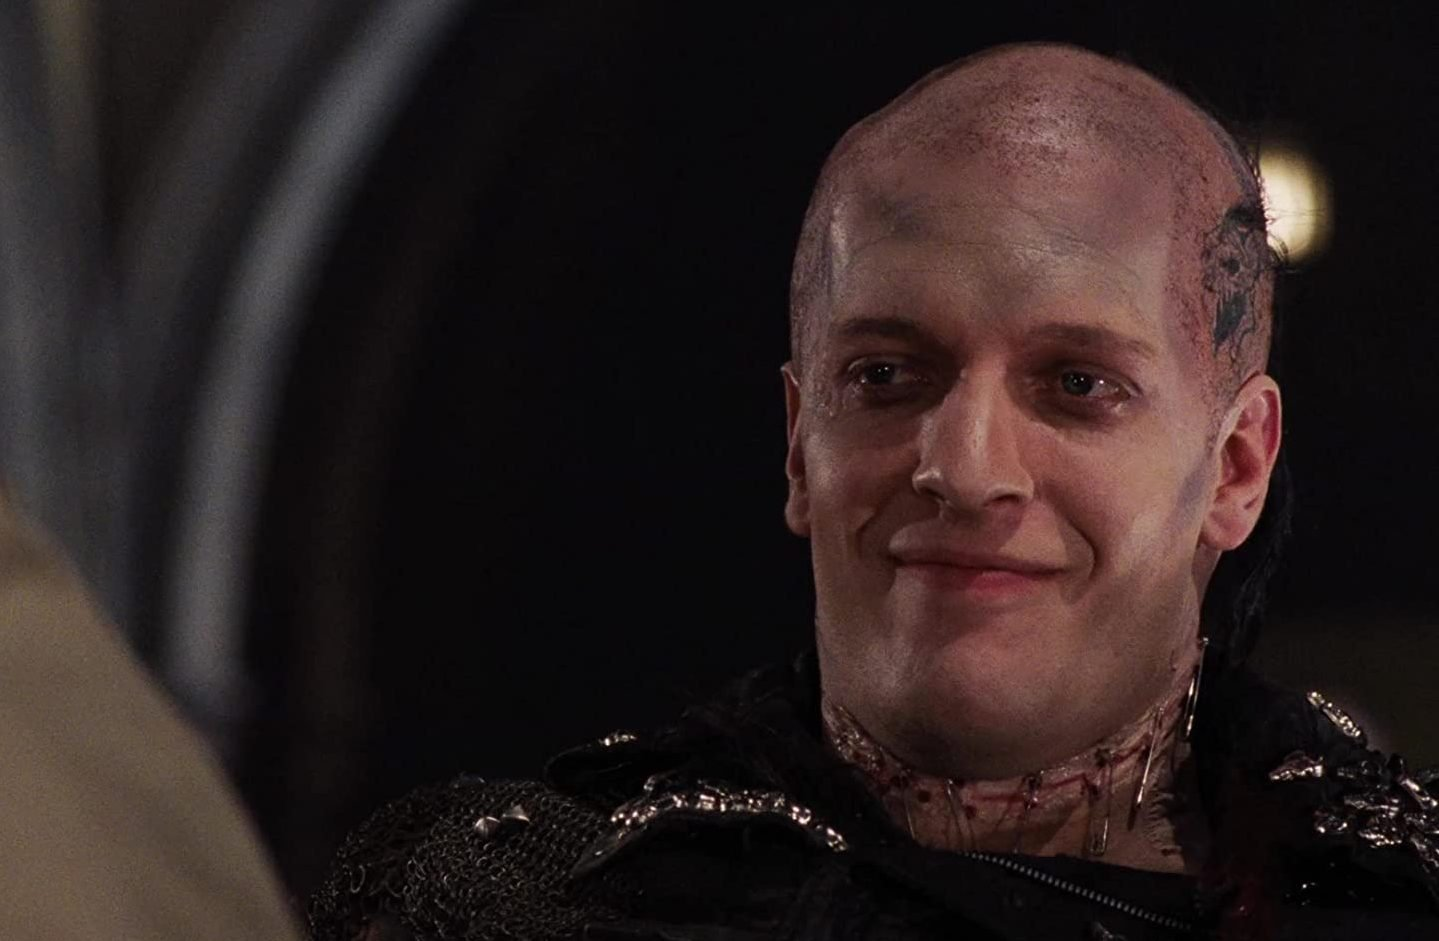 Highlander Clancy Brown